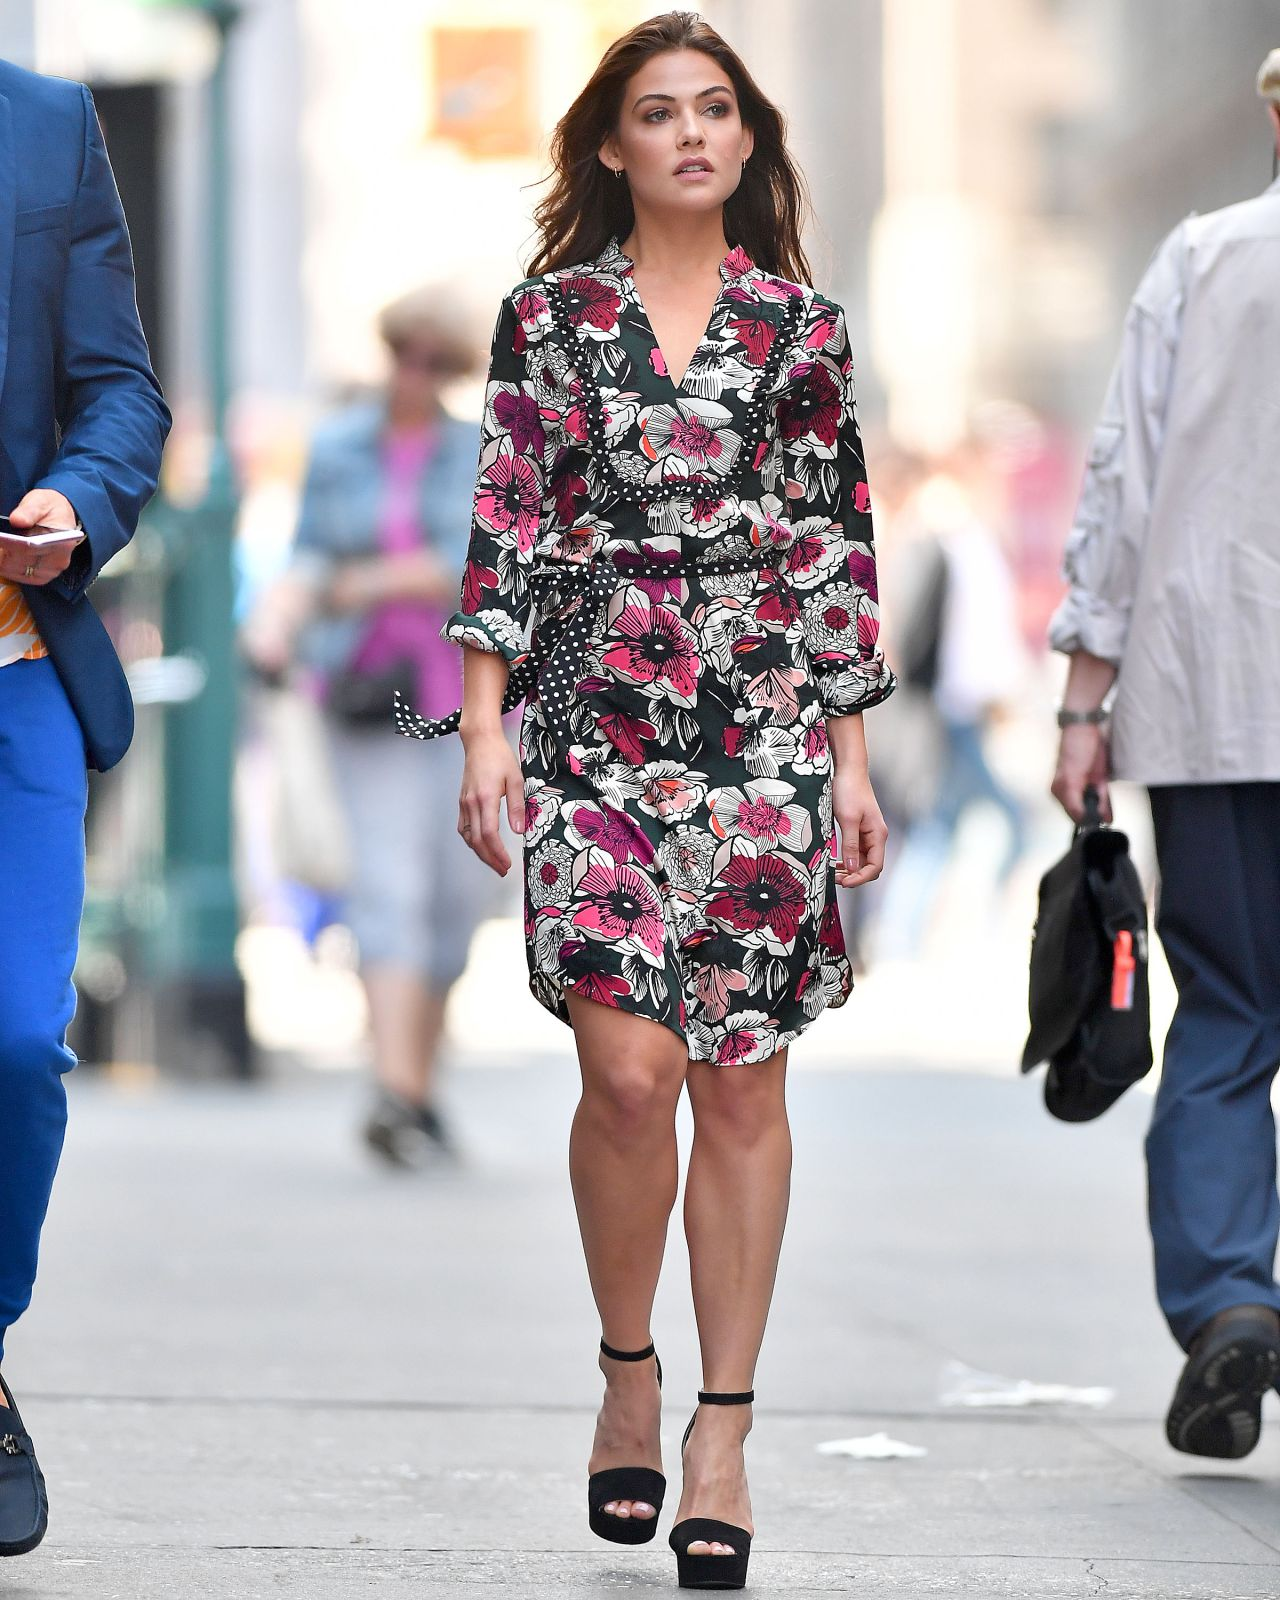 Danielle Campbell In A Floral Dress In Nyc 09 06 2017